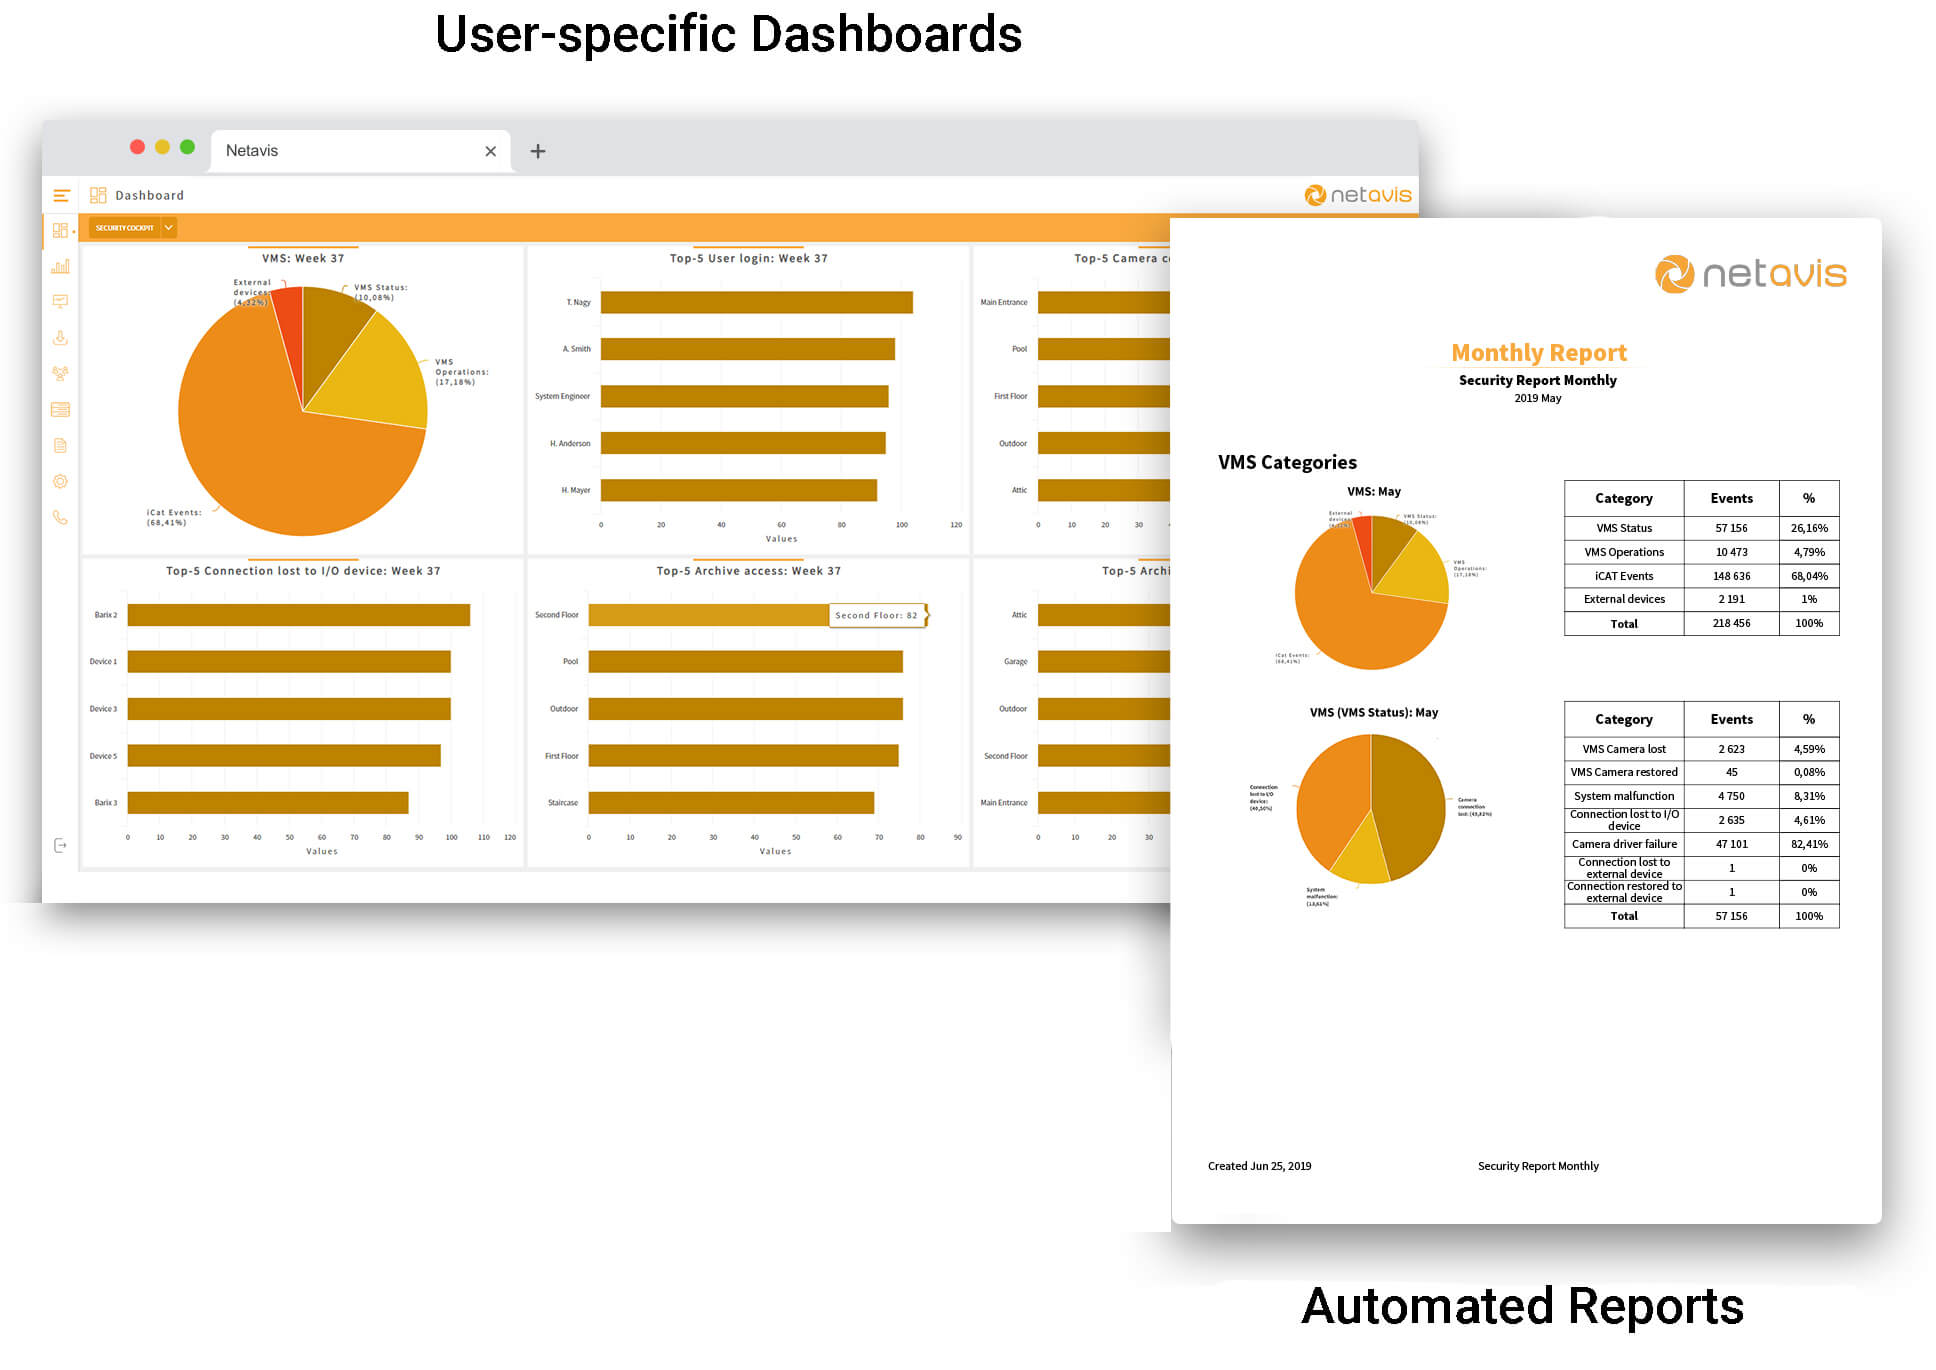 User-specific Dashboards and Automated reports of security cockpit